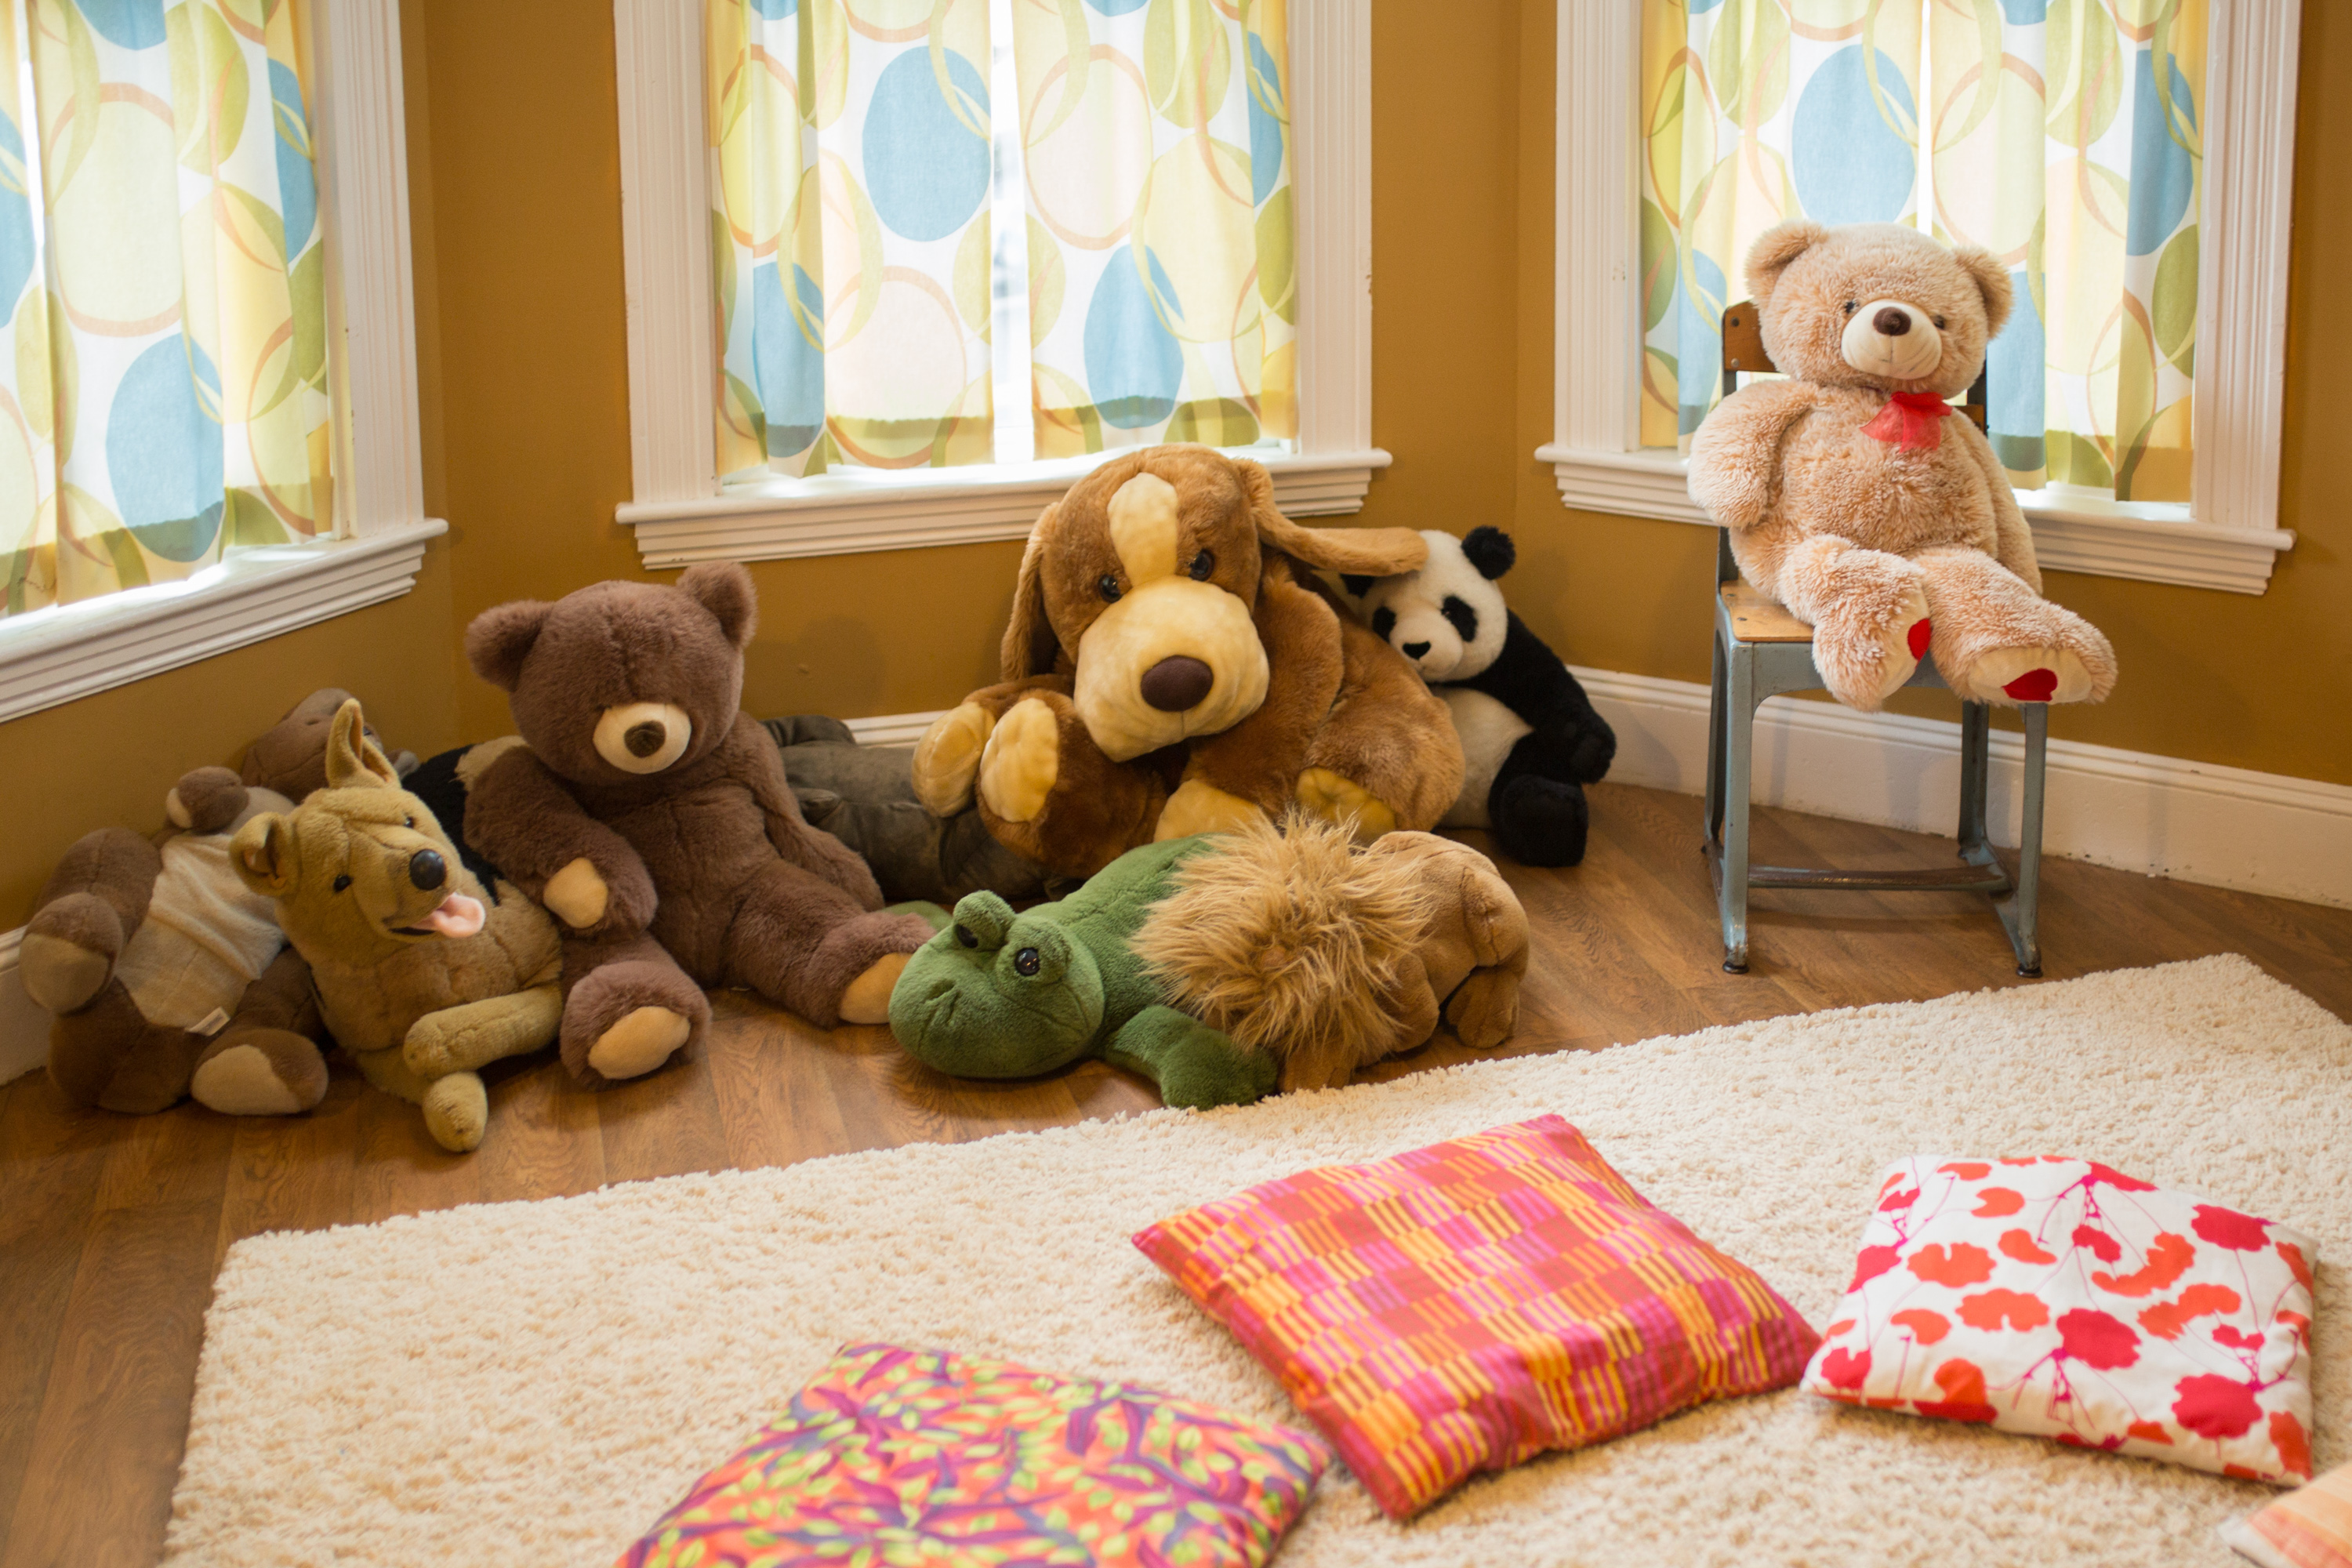 A room with teddy bears and floor pillows.